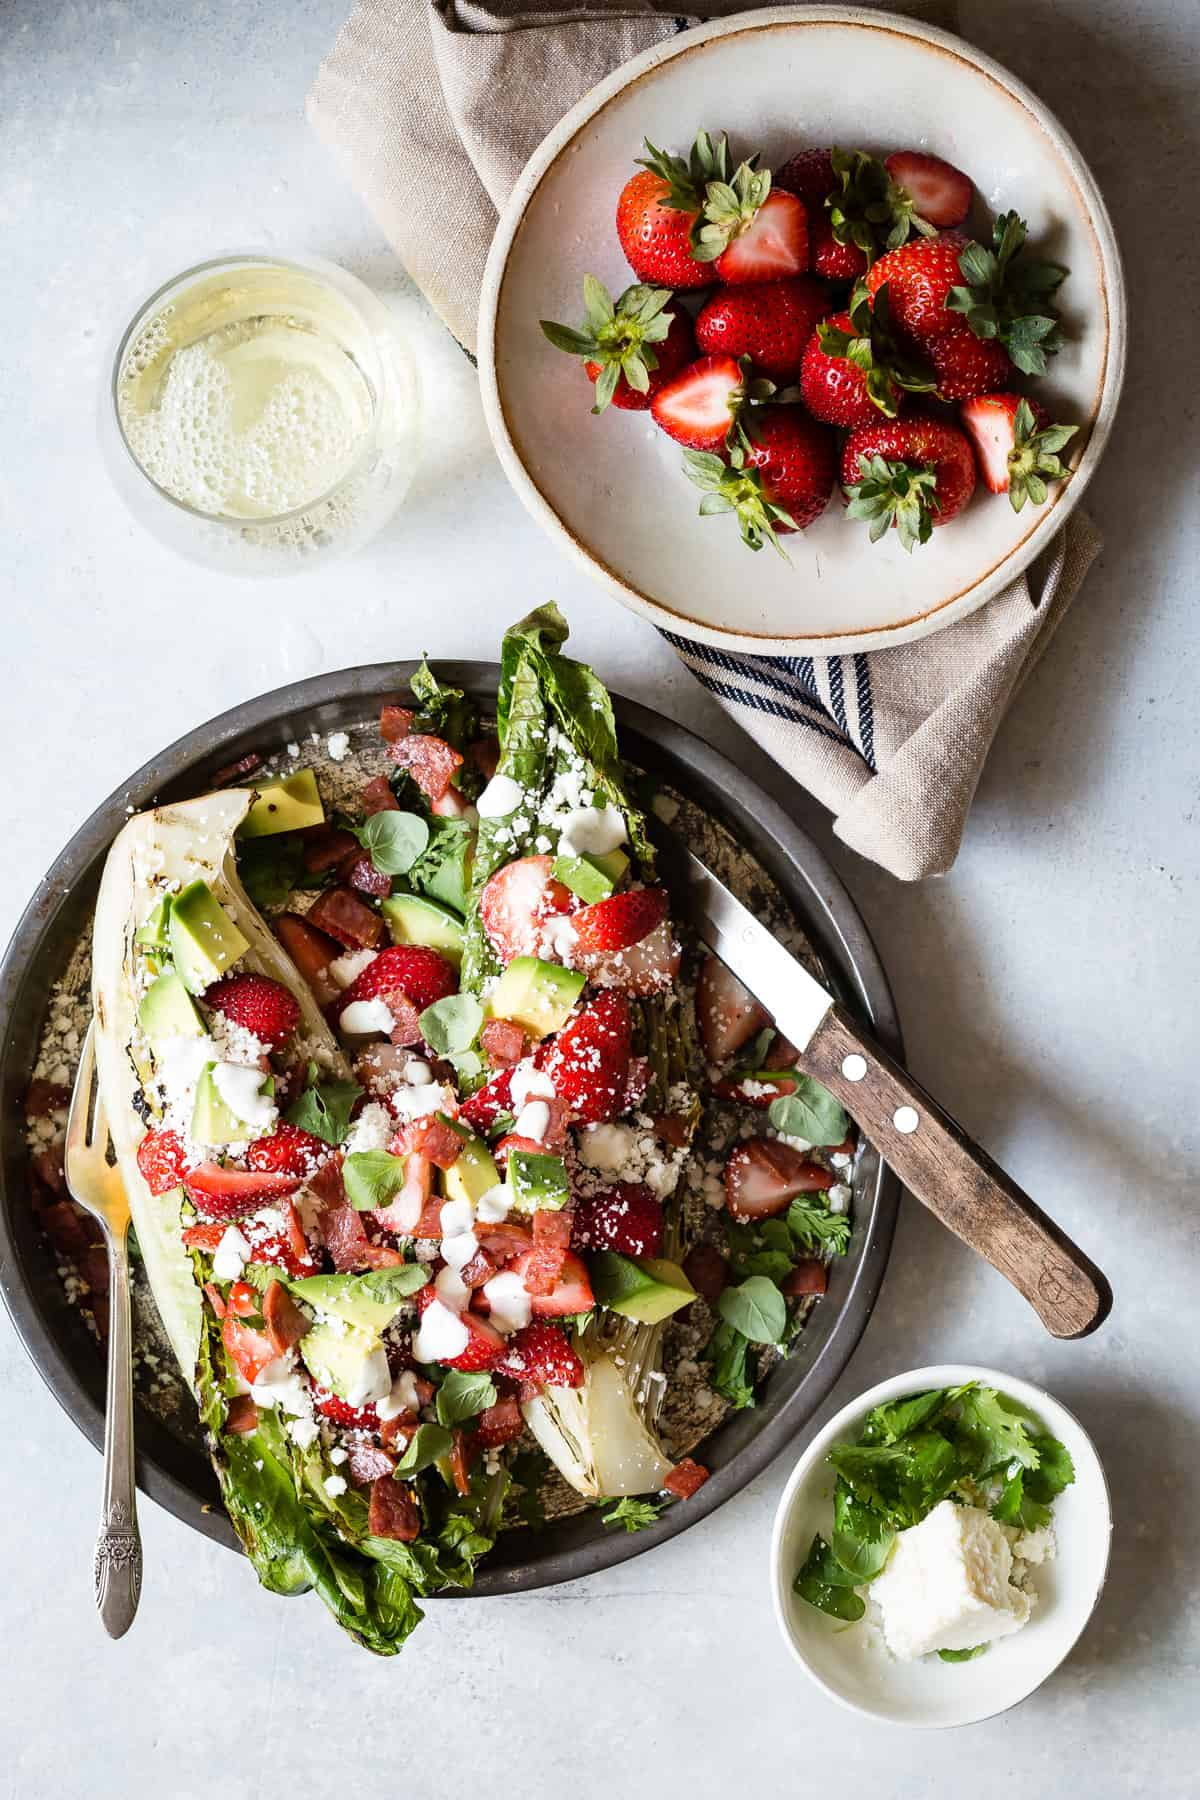 Easy lunch alert! Strawberry Salad with grilled romaine, avocado and crispy salami.